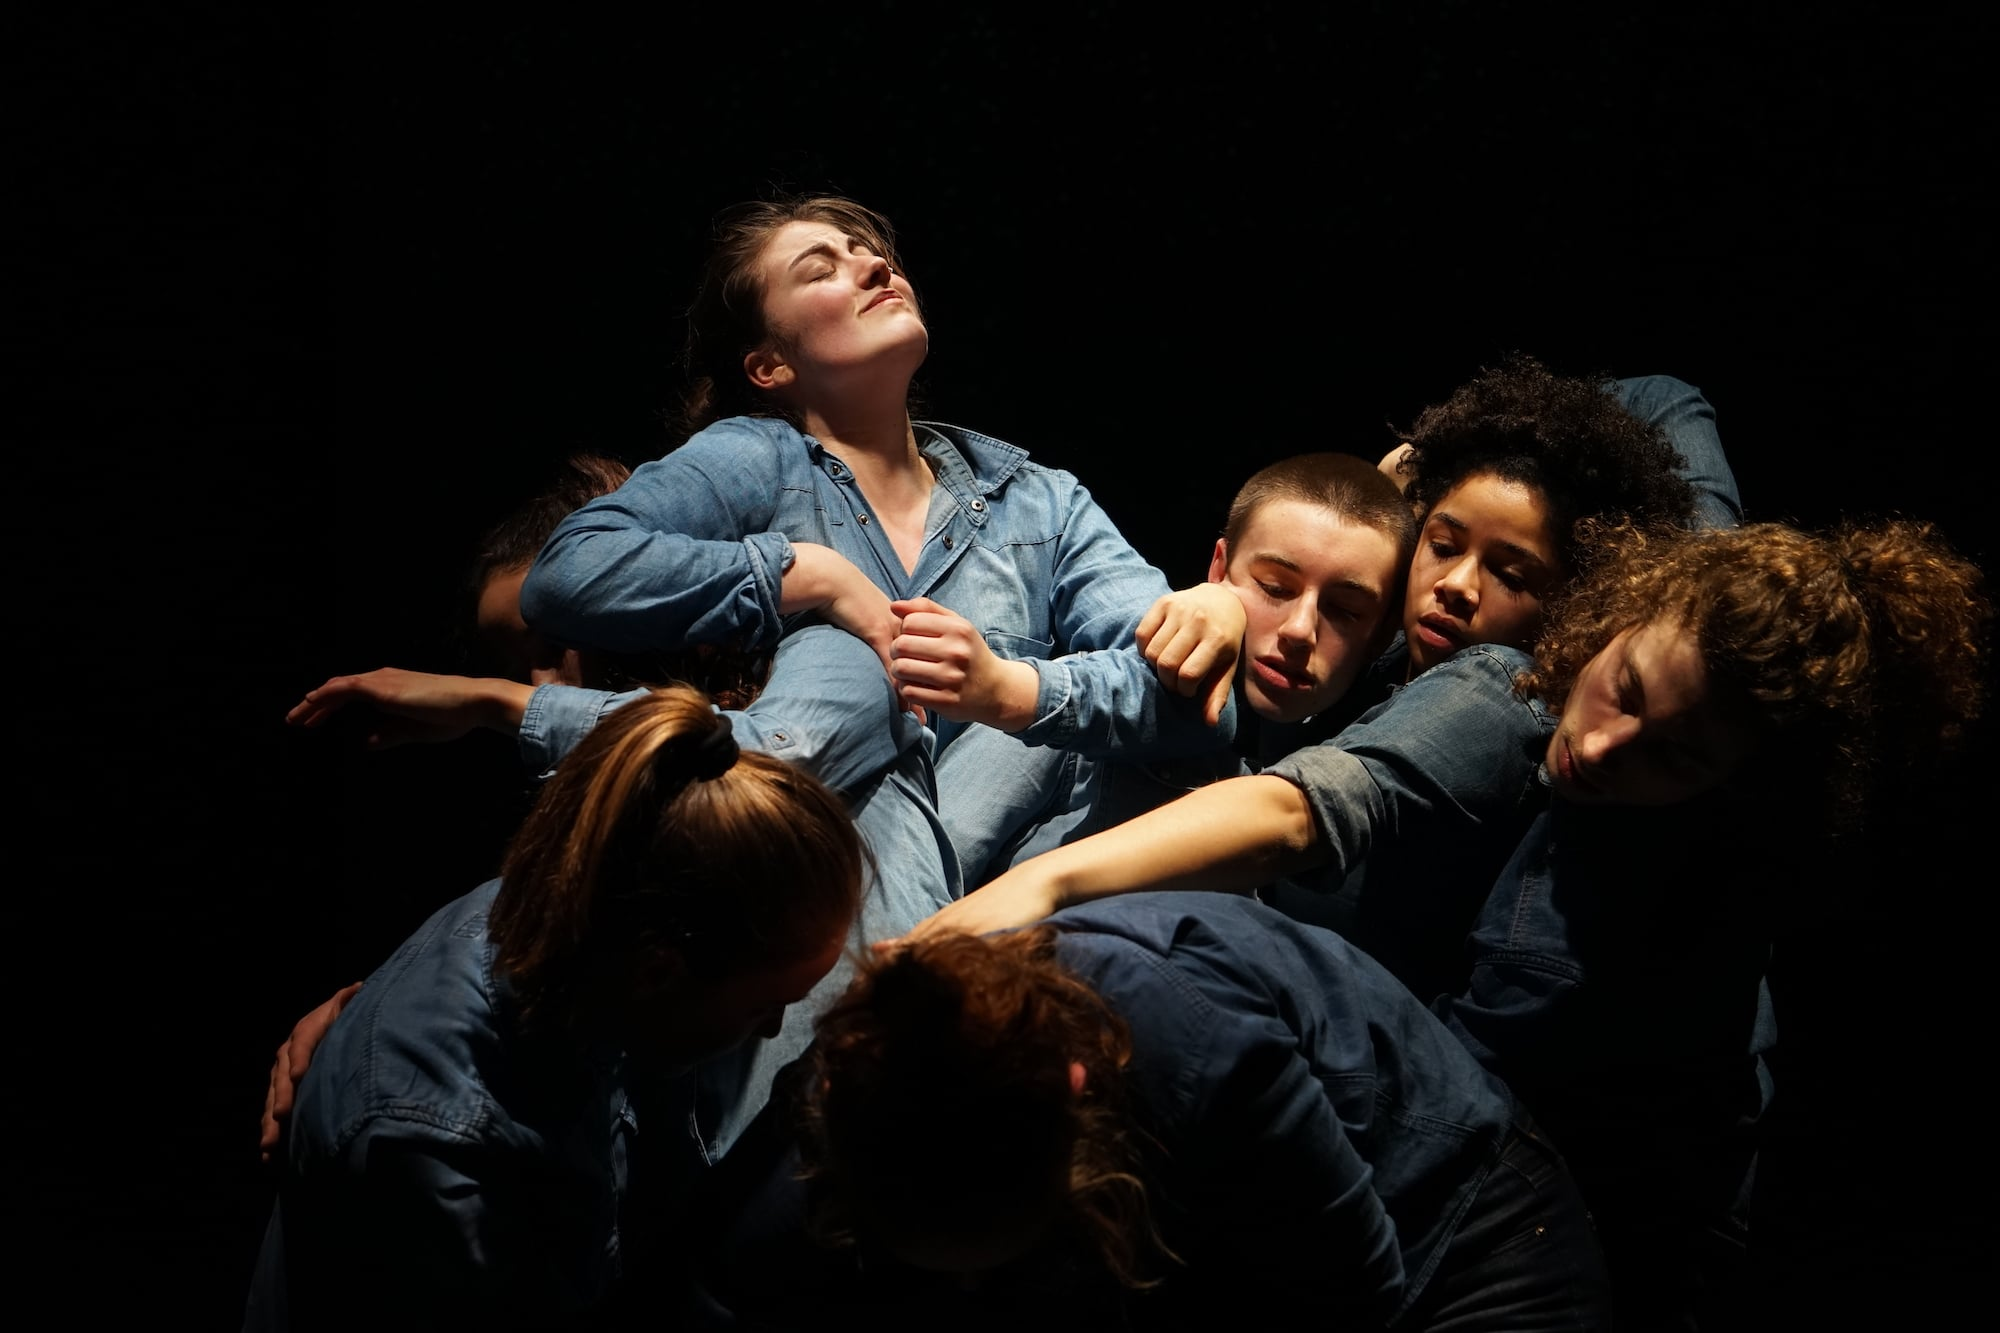 Kampf aus dem Gruppenknäuel: «What We Are Looking For» im Jungen Theater Basel.